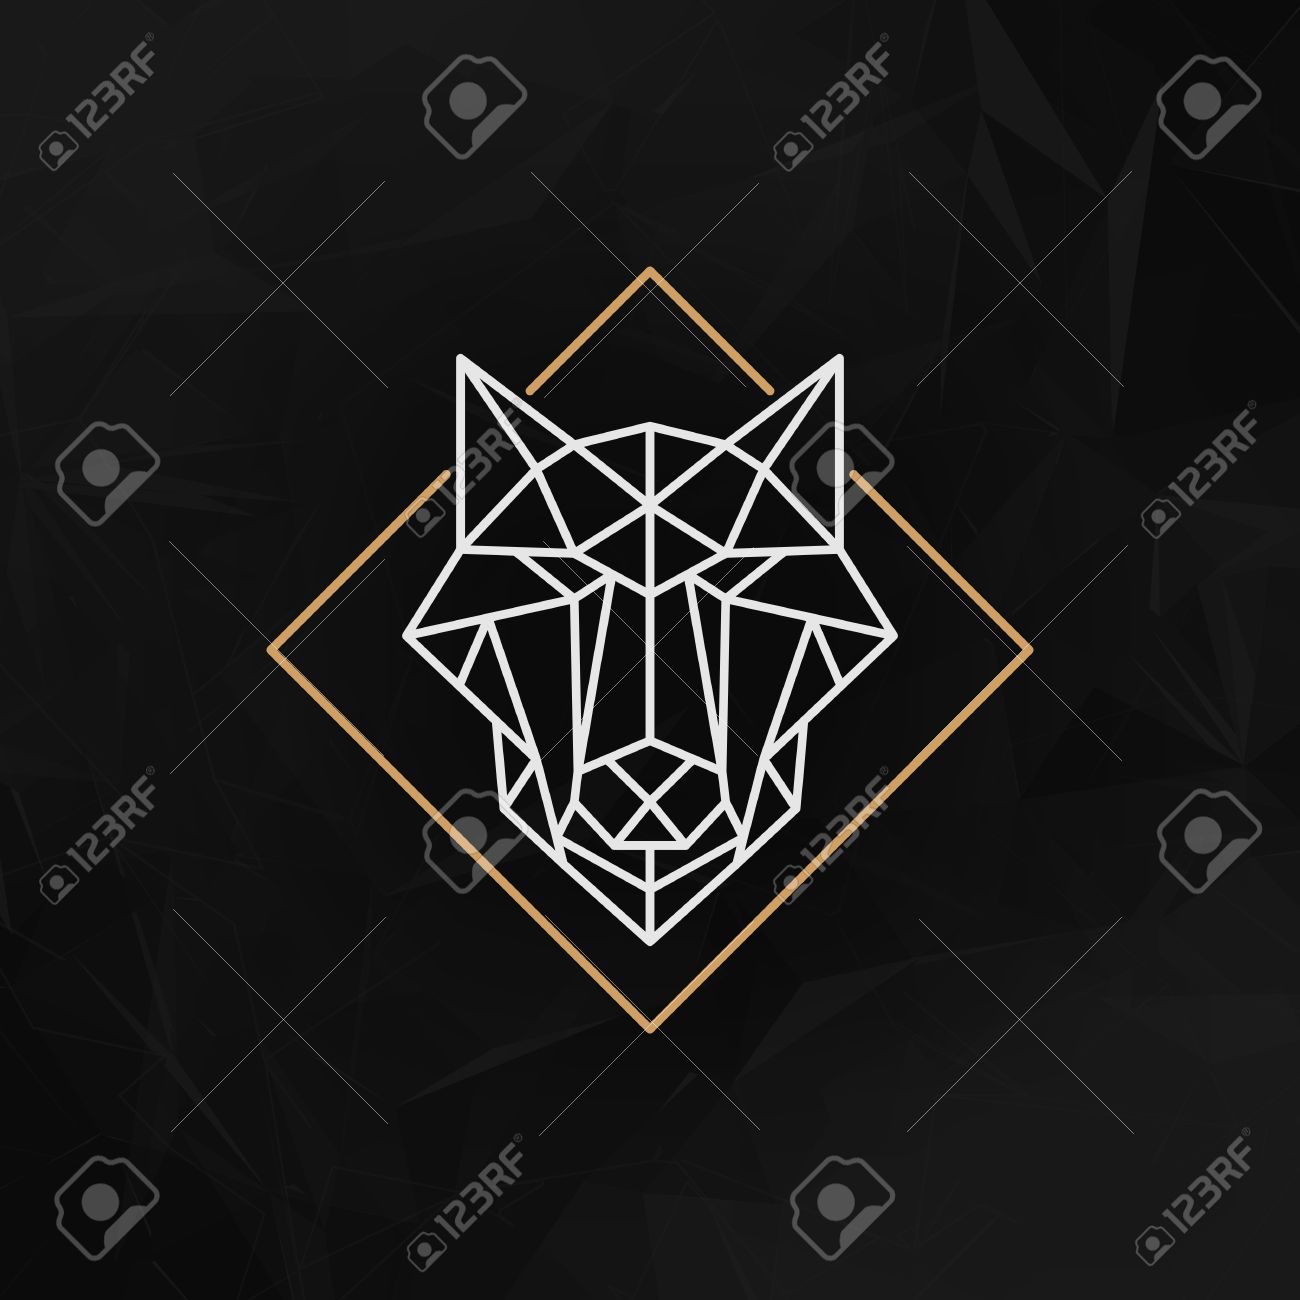 The wolf head Icon - Vector illustration. The wolf head in outline low poly style on the dark abstract geometric background. - 48052627